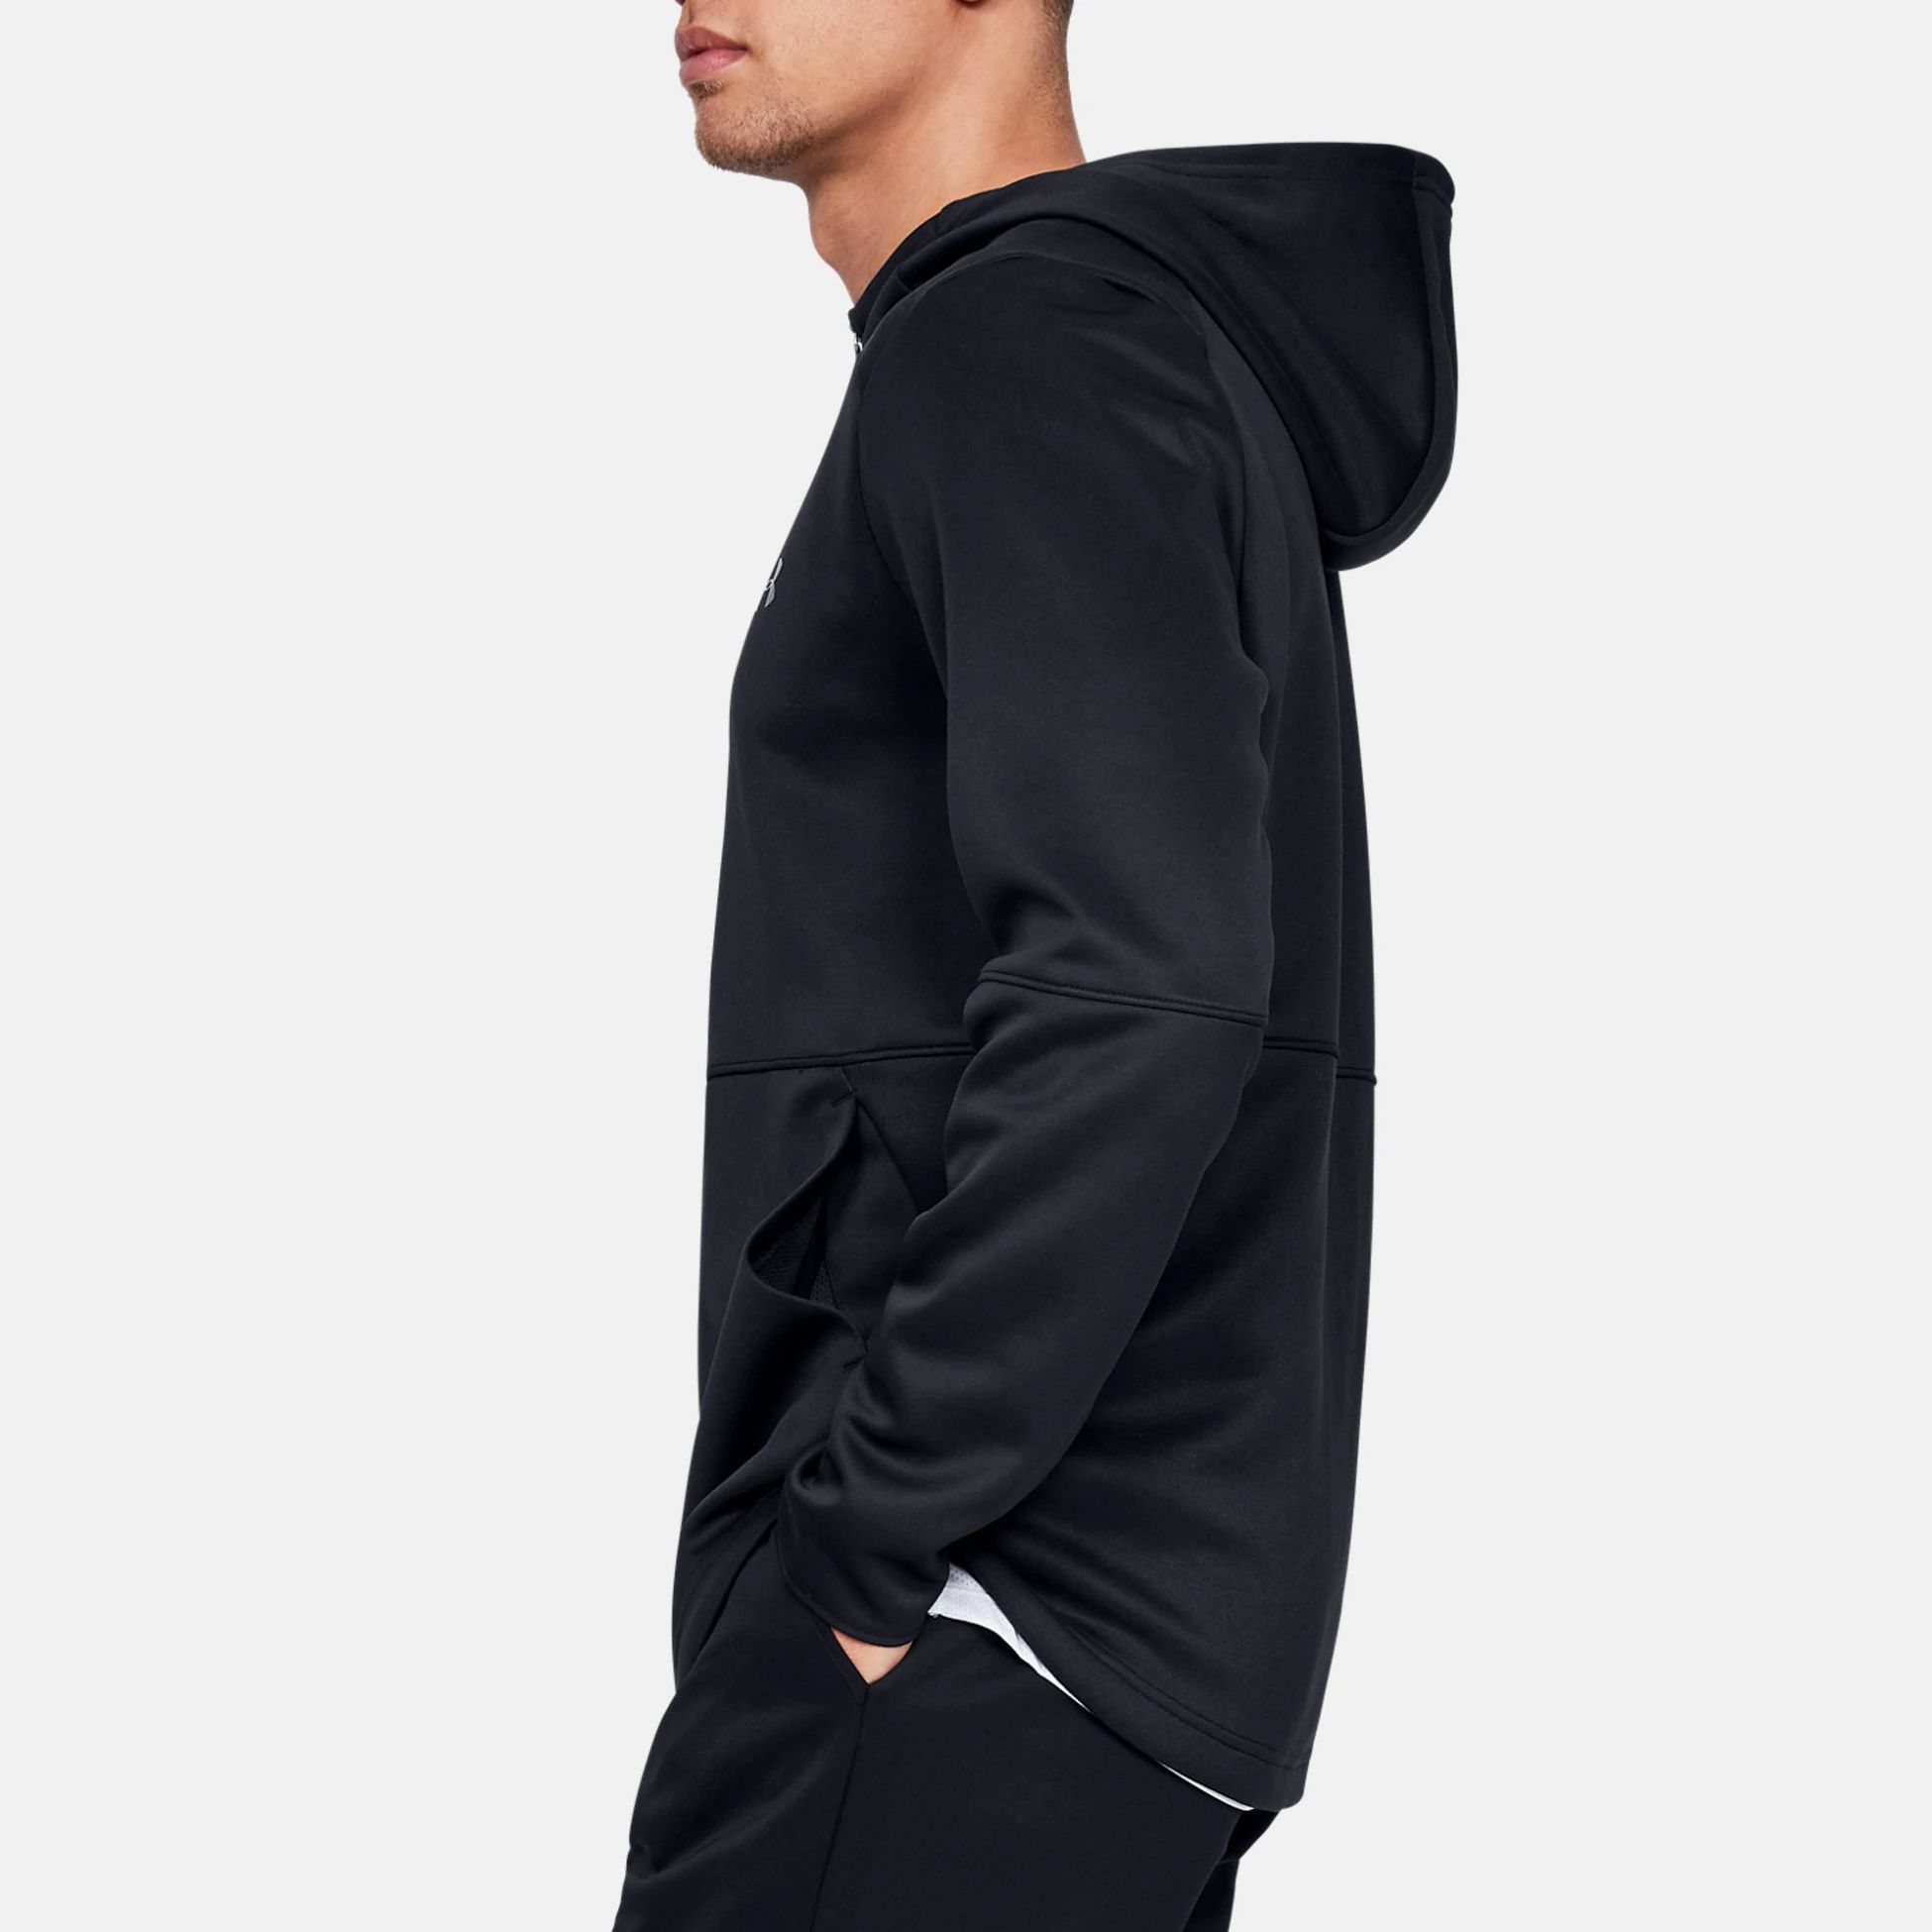 Îmbrăcăminte -  under armour UA MK-1 Warm-Up Full Zip Hoodie 5259